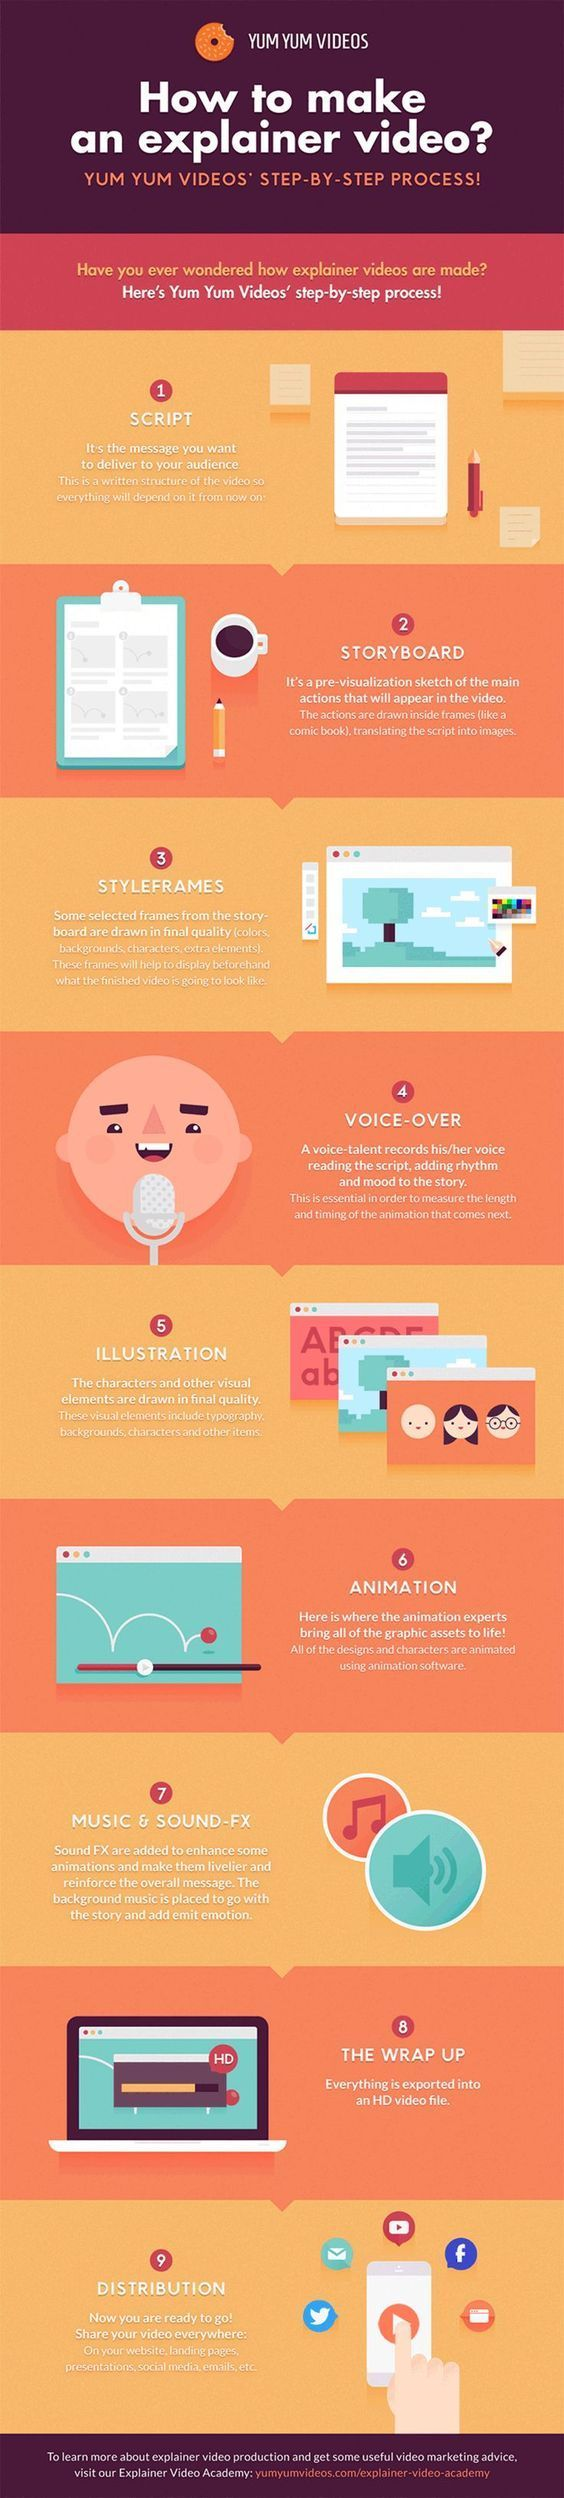 How to Make an Explainer Video - A Step-by-Step Process -- Click on the image fo...